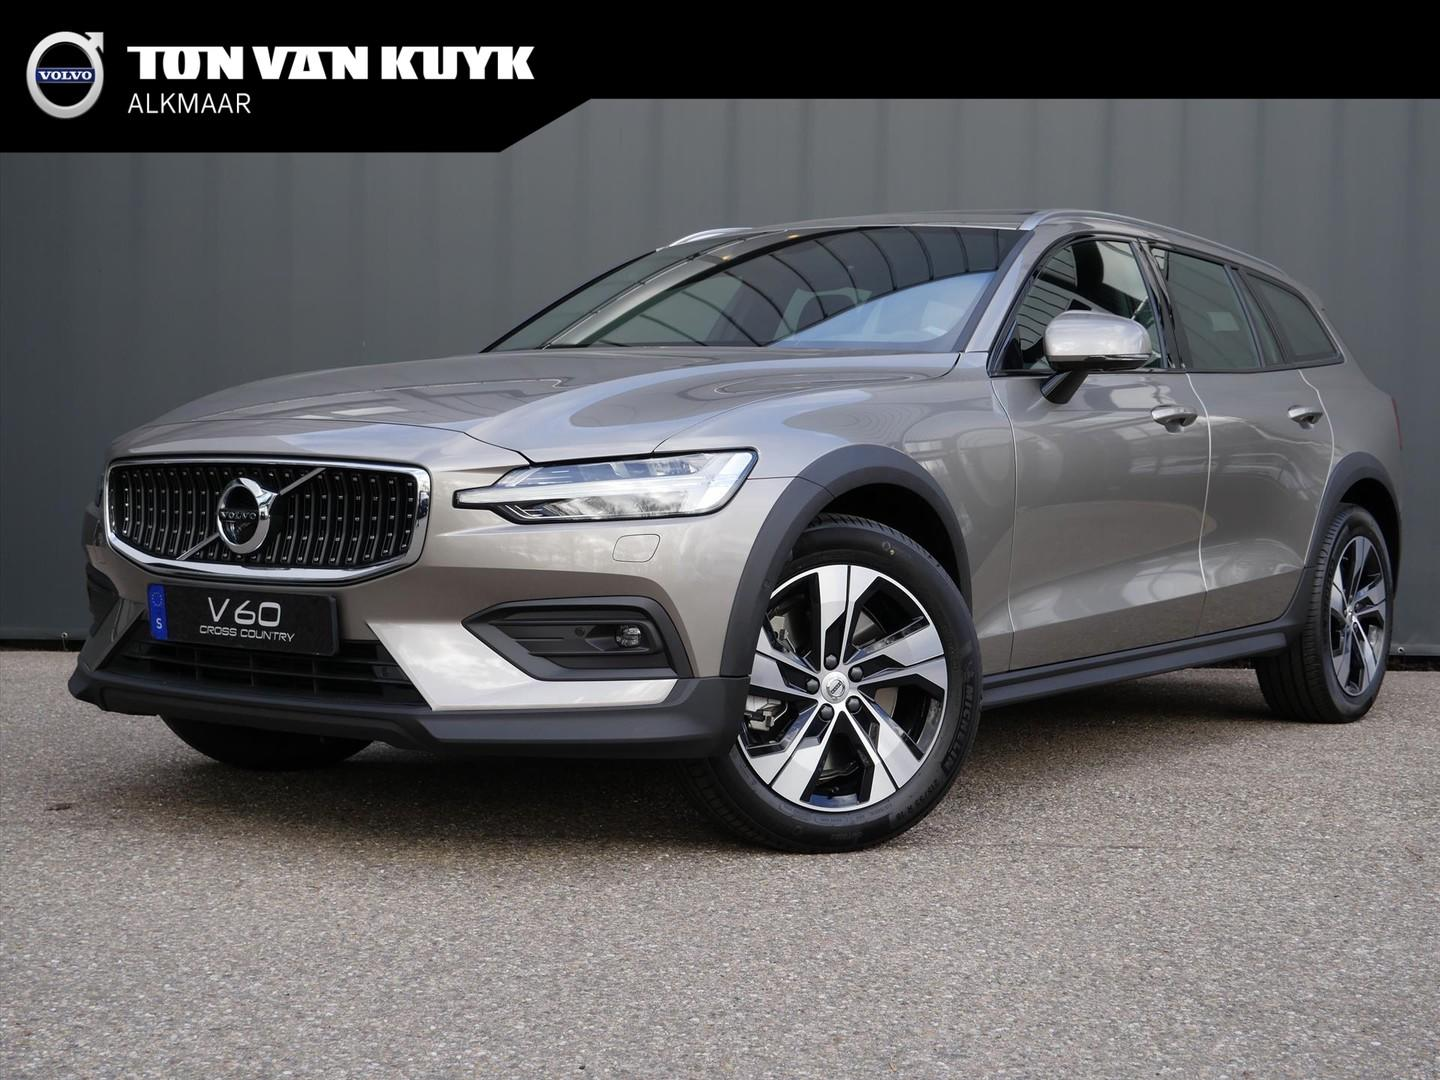 Volvo V60 cross country New d4 awd aut intro edition